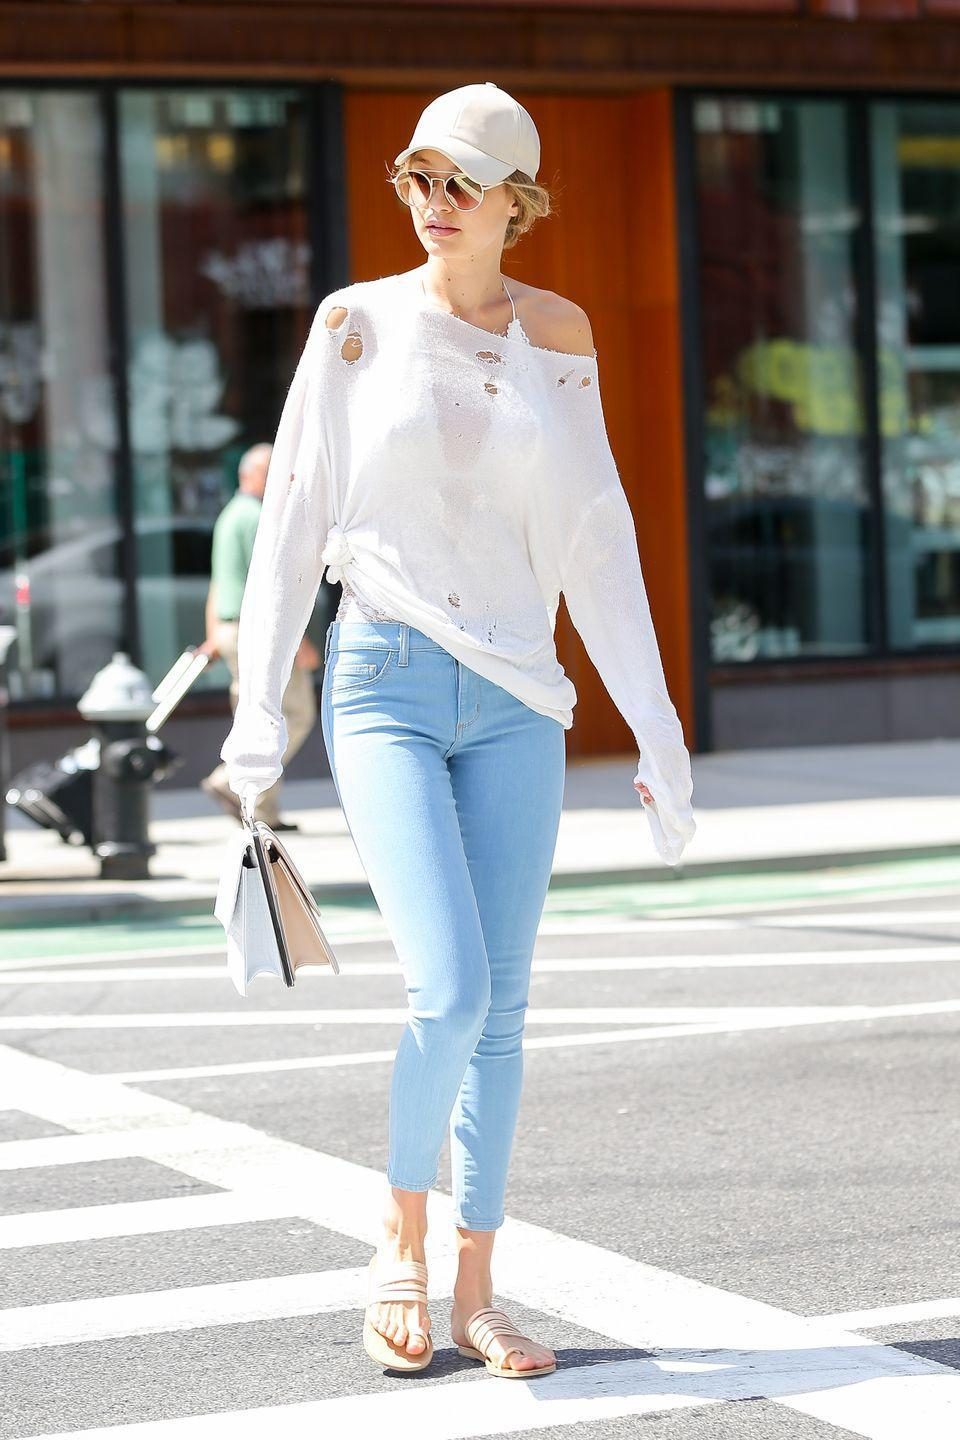 <p>The model steps out to lunch in NYC wearing a distressed white knit and pale blue jeans with flat sandals, a top-handle bag and white baseball cap. </p>